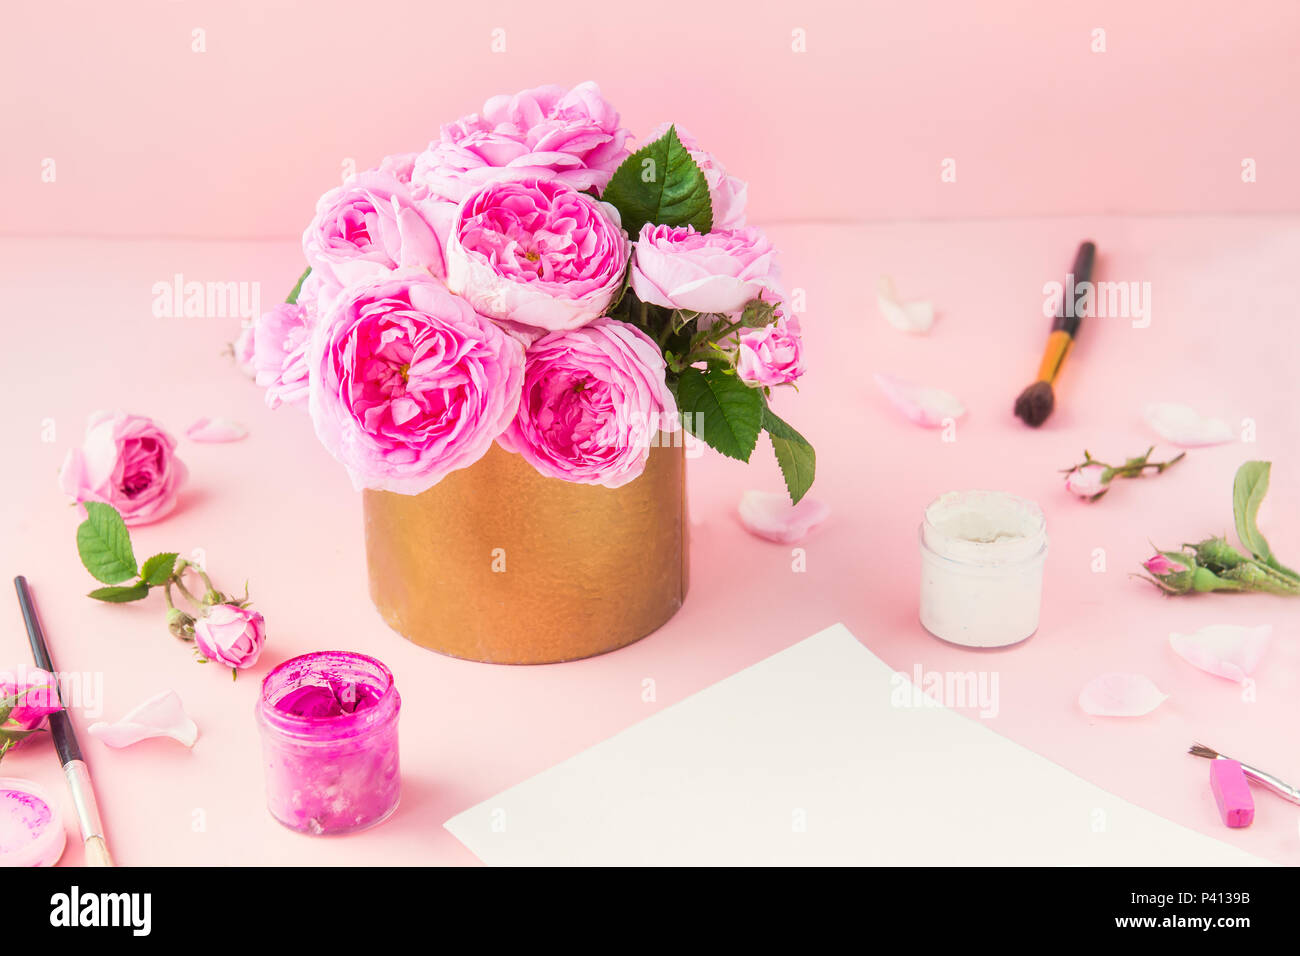 Pink Tea Roses Bouquet In Vintage Pot And Art Materials Paper